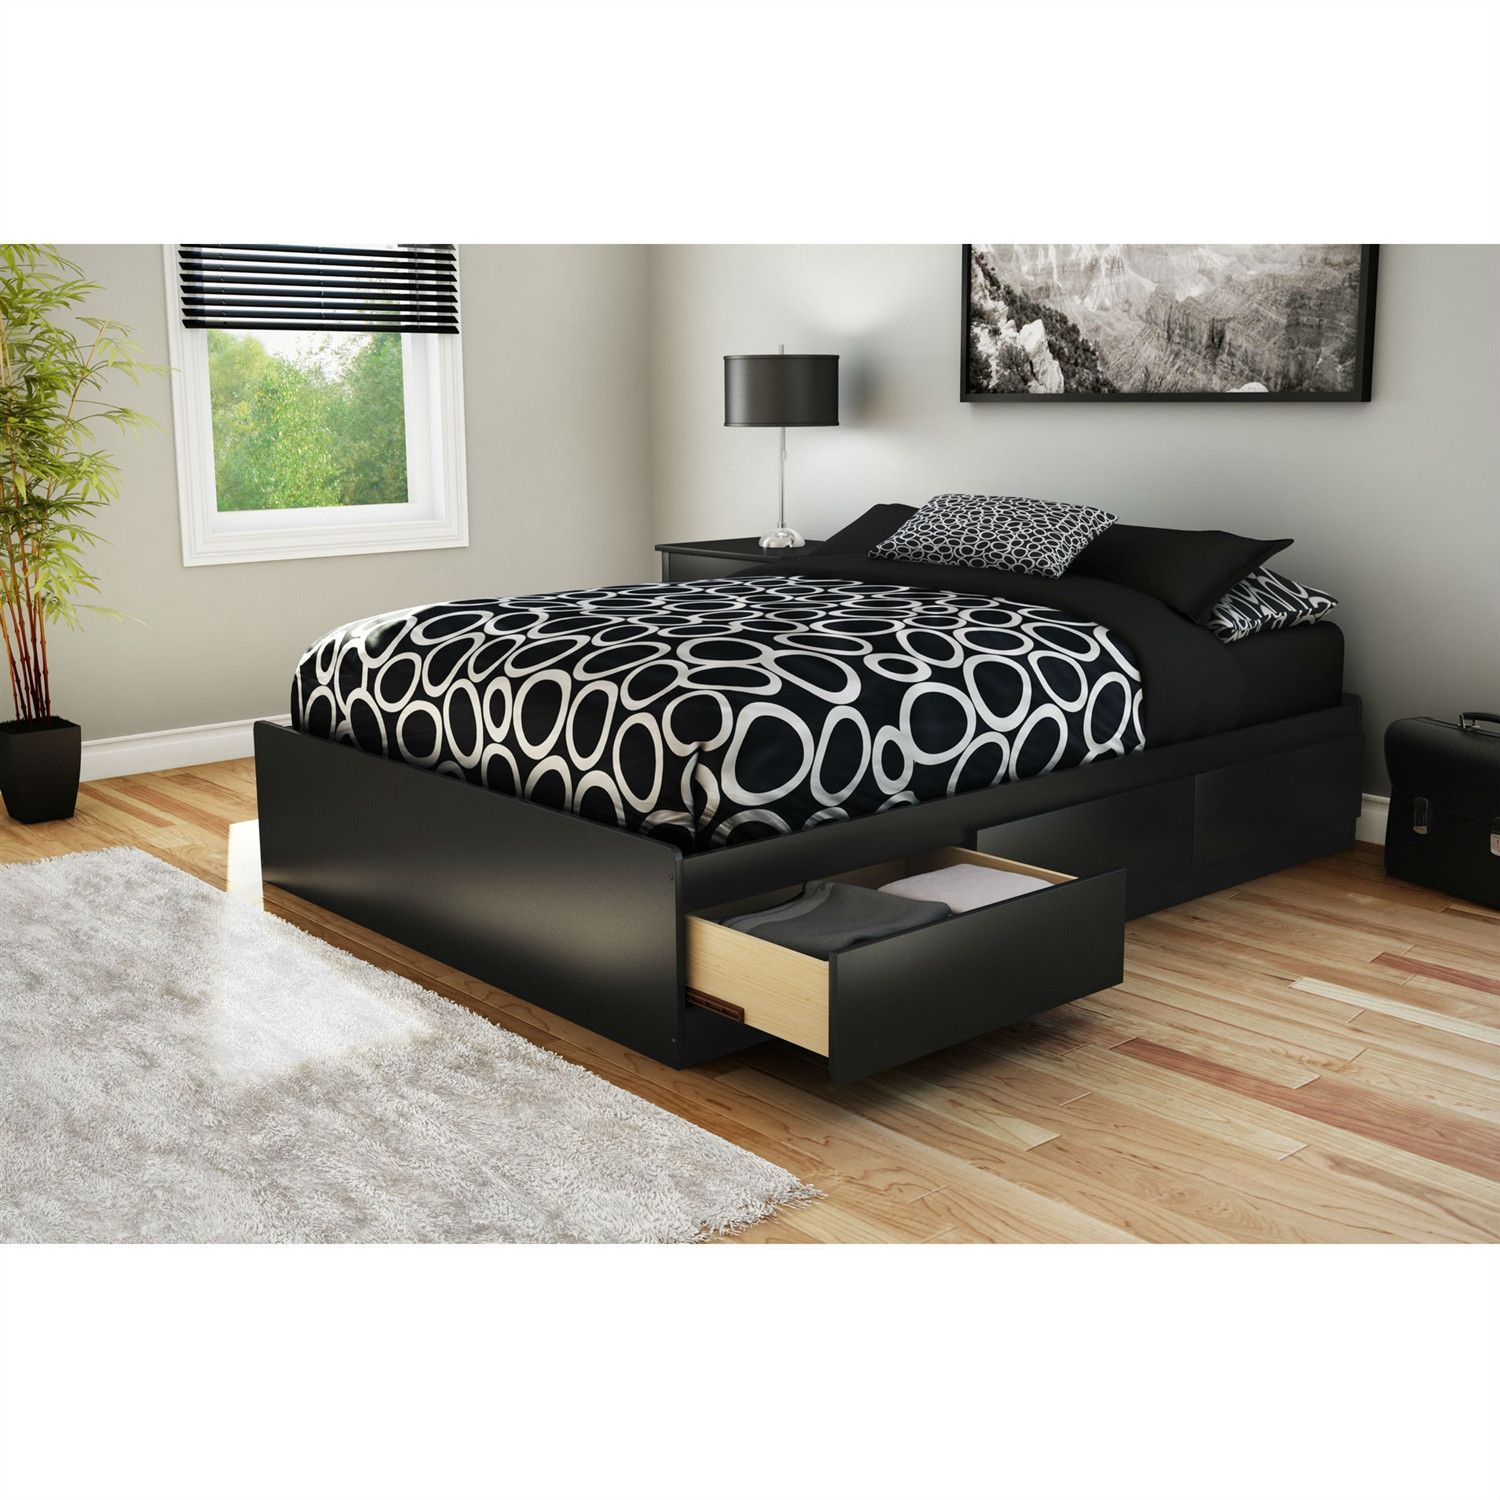 Best Full Size Modern Platform Bed With 3 Storage Drawers In 400 x 300